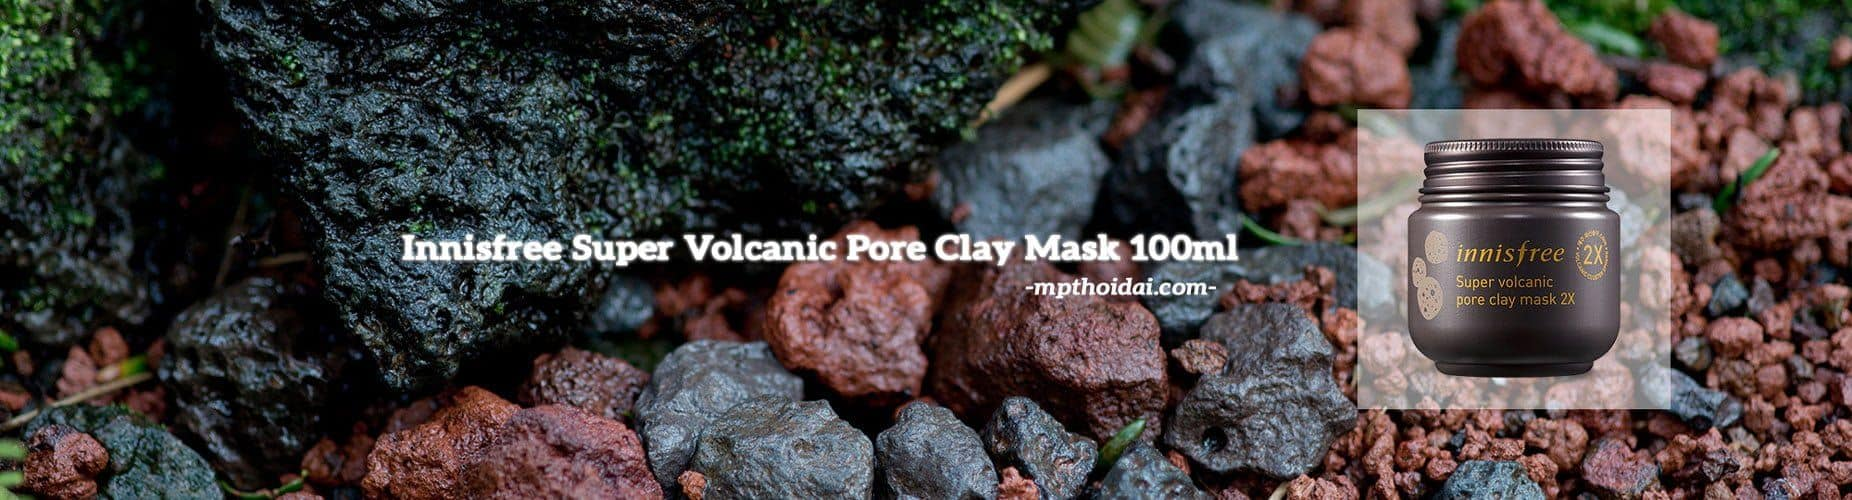 Innisfree Super Volcanic Pore Clay Mask X2